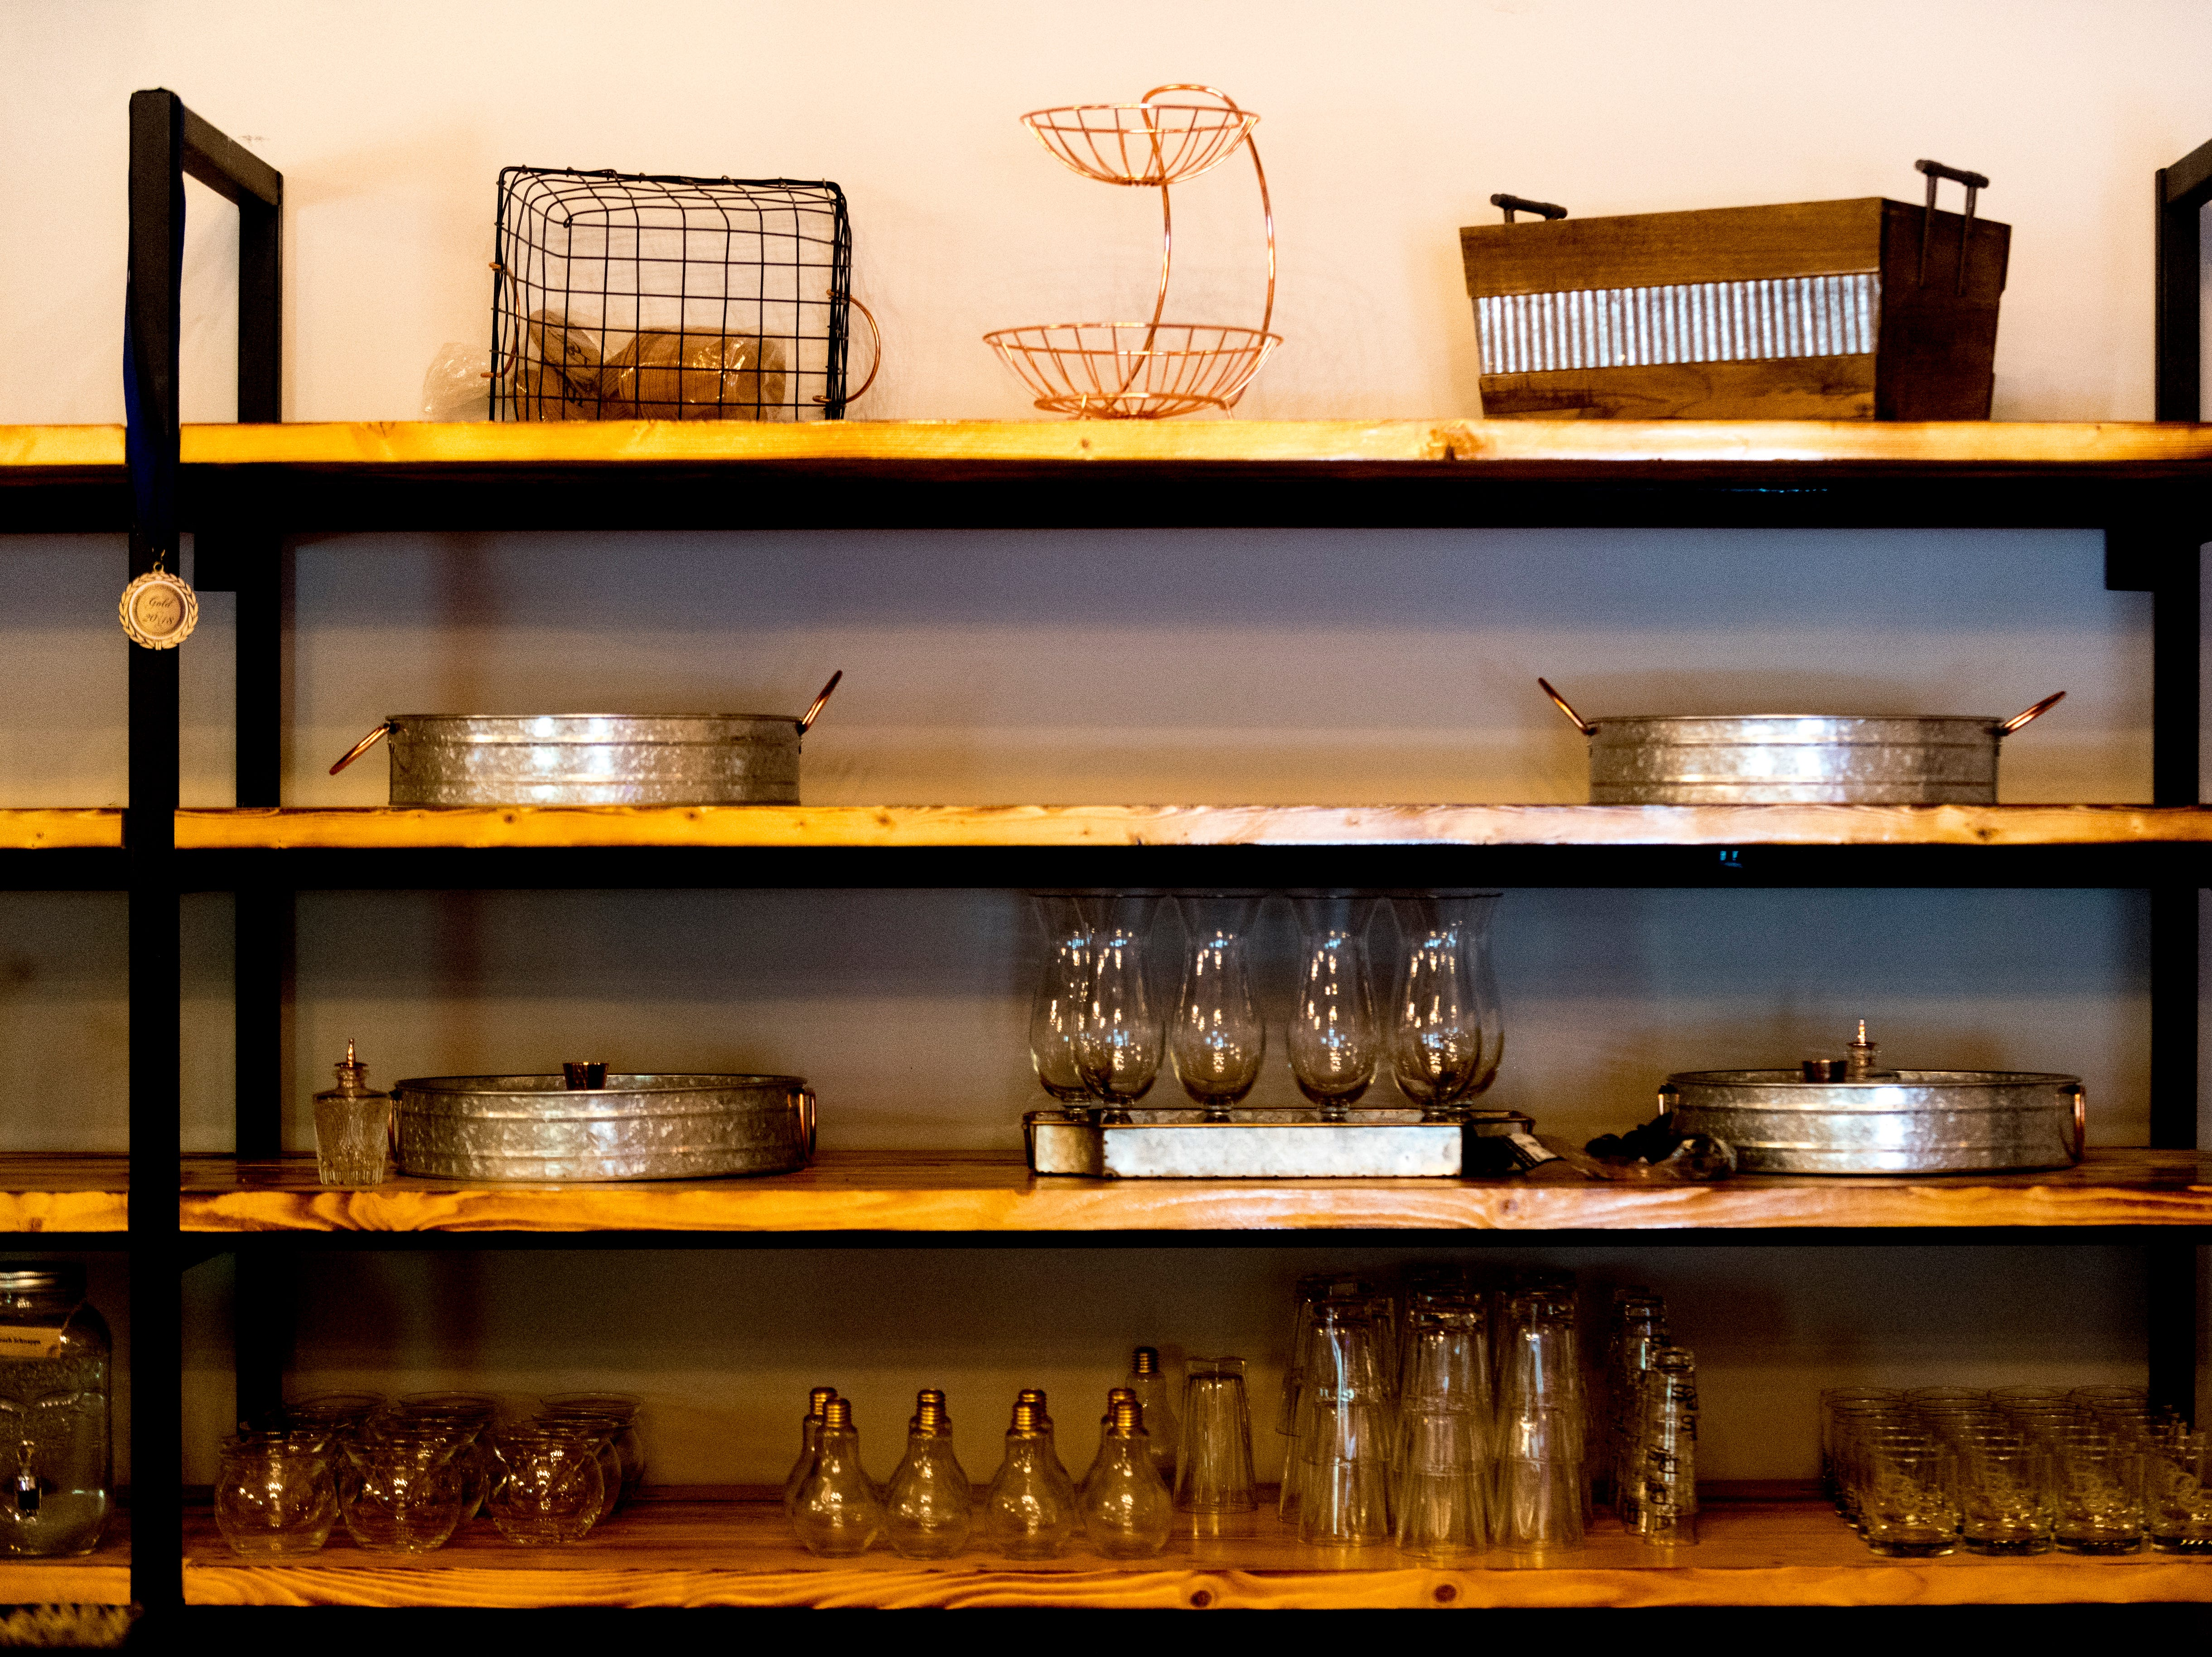 Glasses on a shelf behind the bar inside D&S Distilling on 1610 Jenkins Rd. in Sevierville, Tennessee on Tuesday, October 9, 2018. D&S Distilling is TennesseeÕs first completely organic and gluten-free distillery.